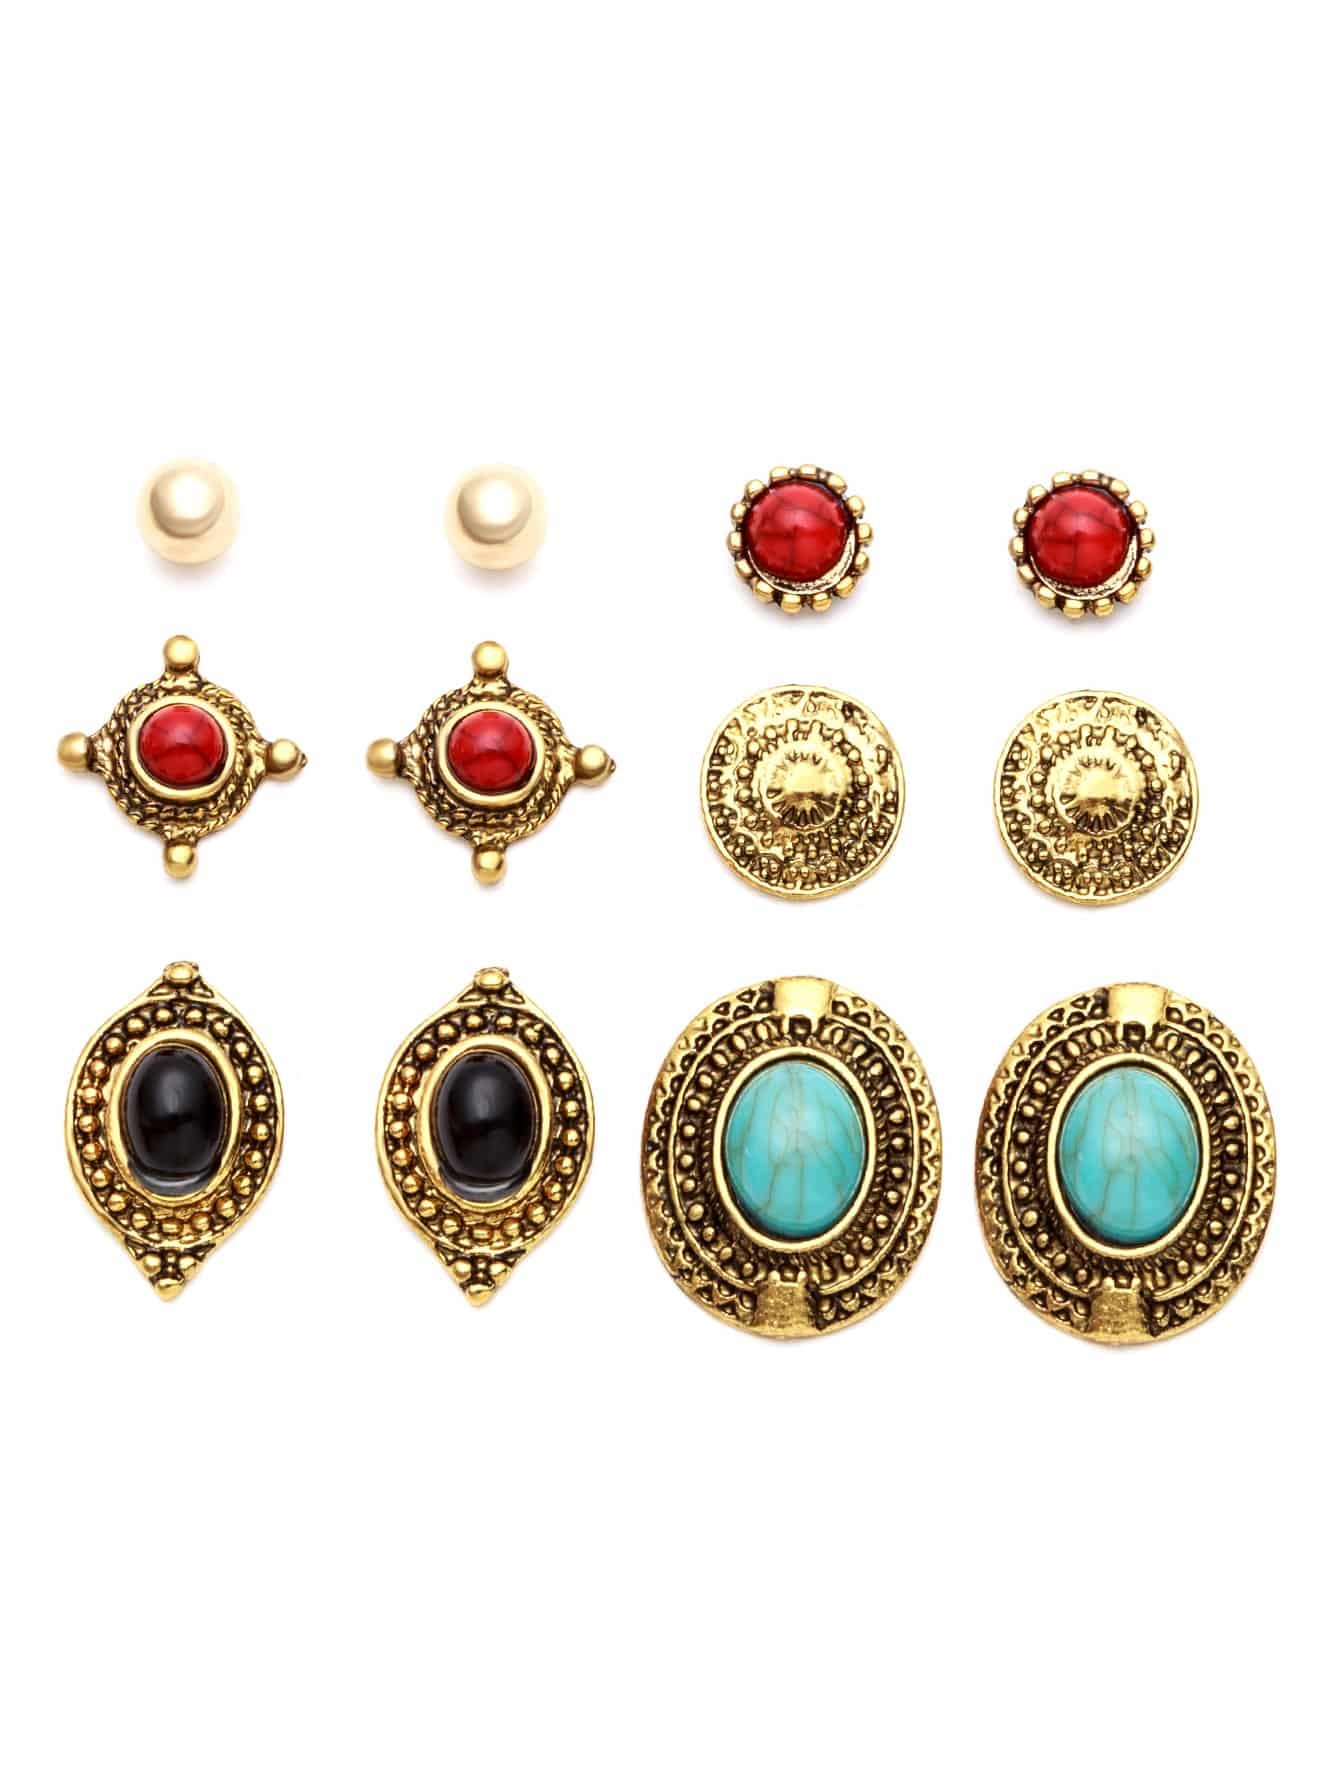 Antique Gold Carved Gemstone Stud Earrings Set 10pcs antique gold gemstone ring set